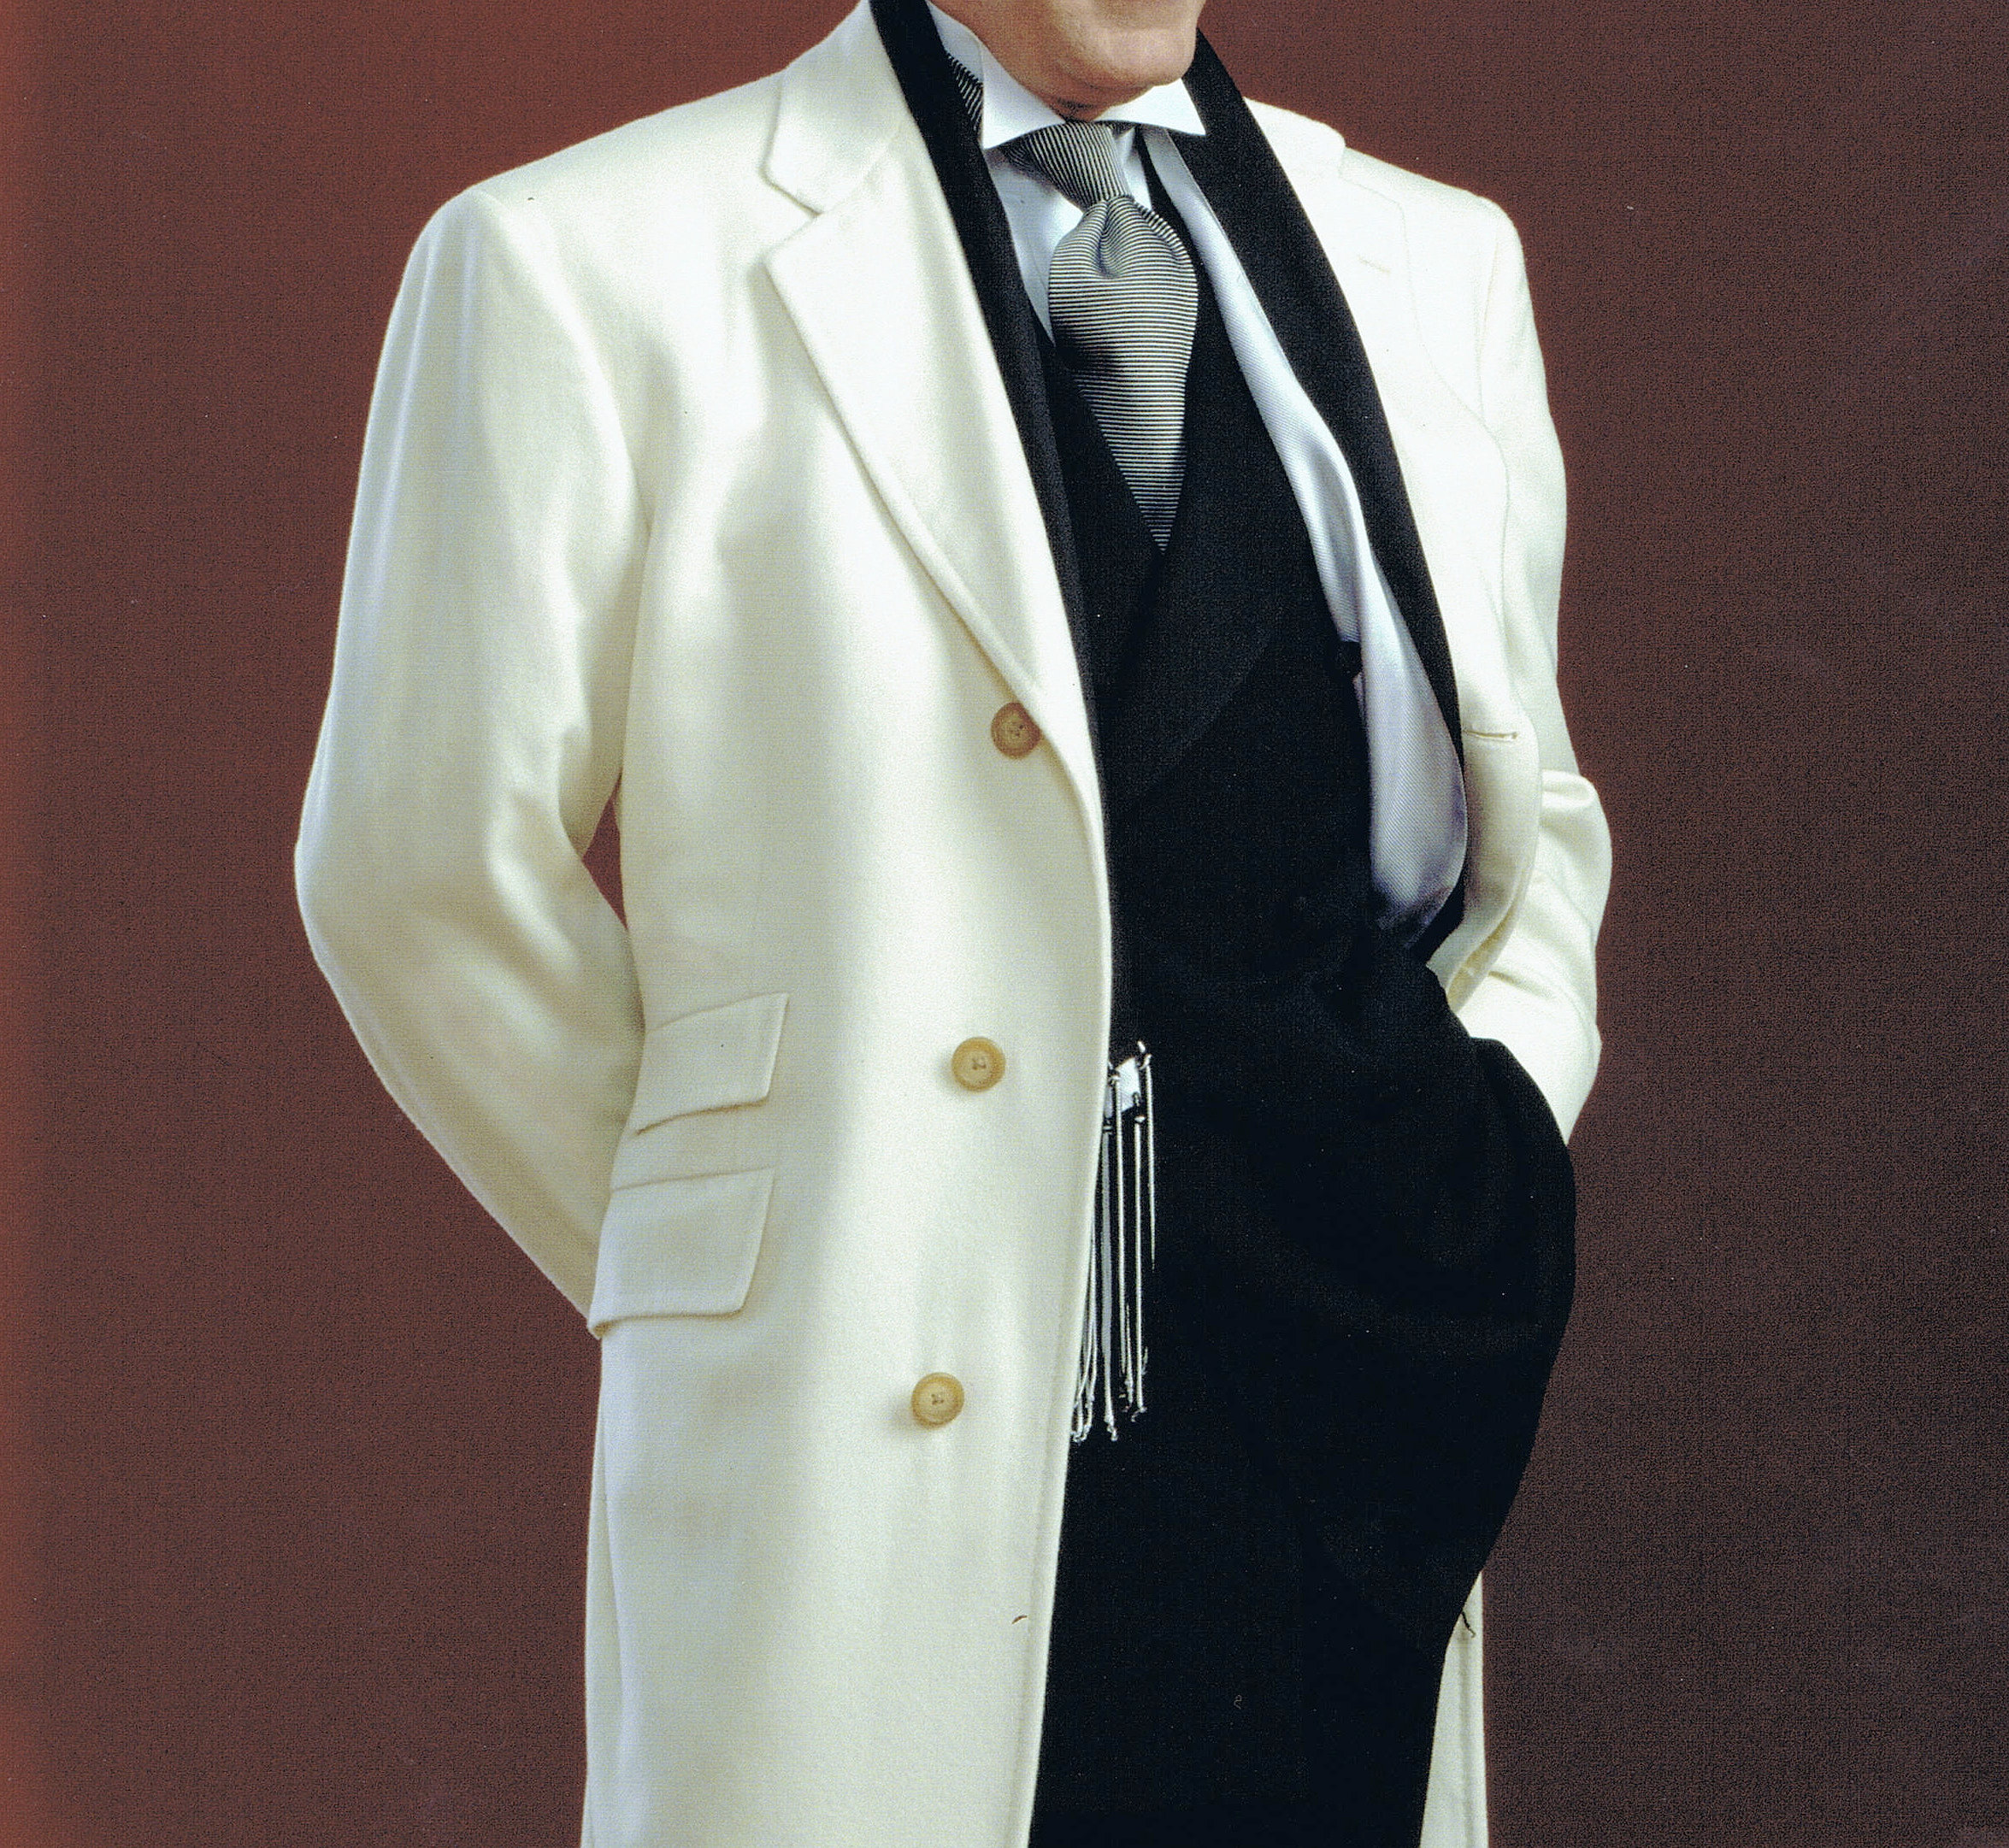 Jack Simpson Couture | THE WHITE CASHMERE TOP COAT Tuxedo Shirt